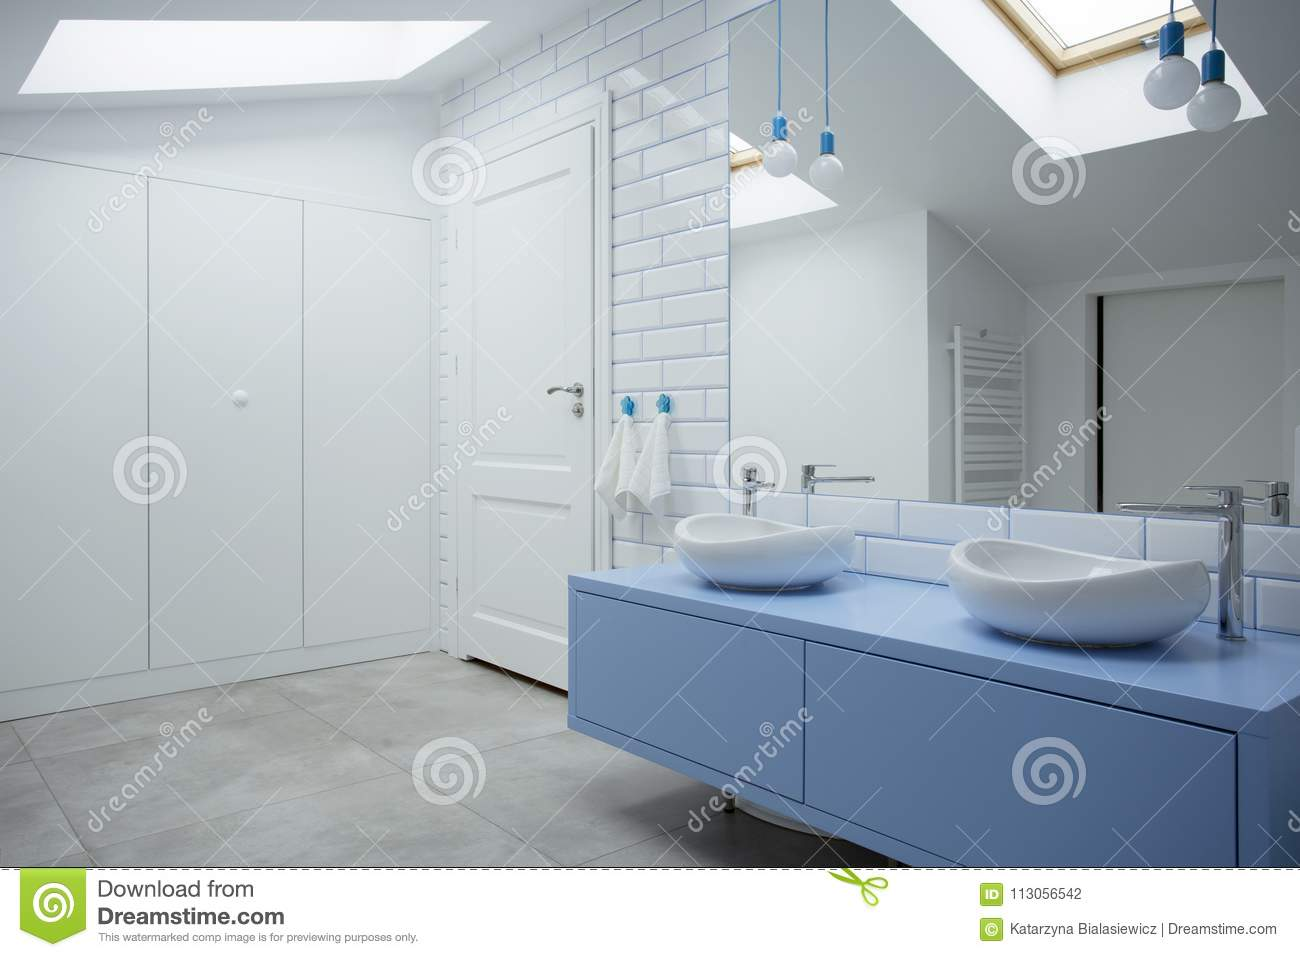 White And Blue Bathroom Interior Stock Photo - Image of house ...